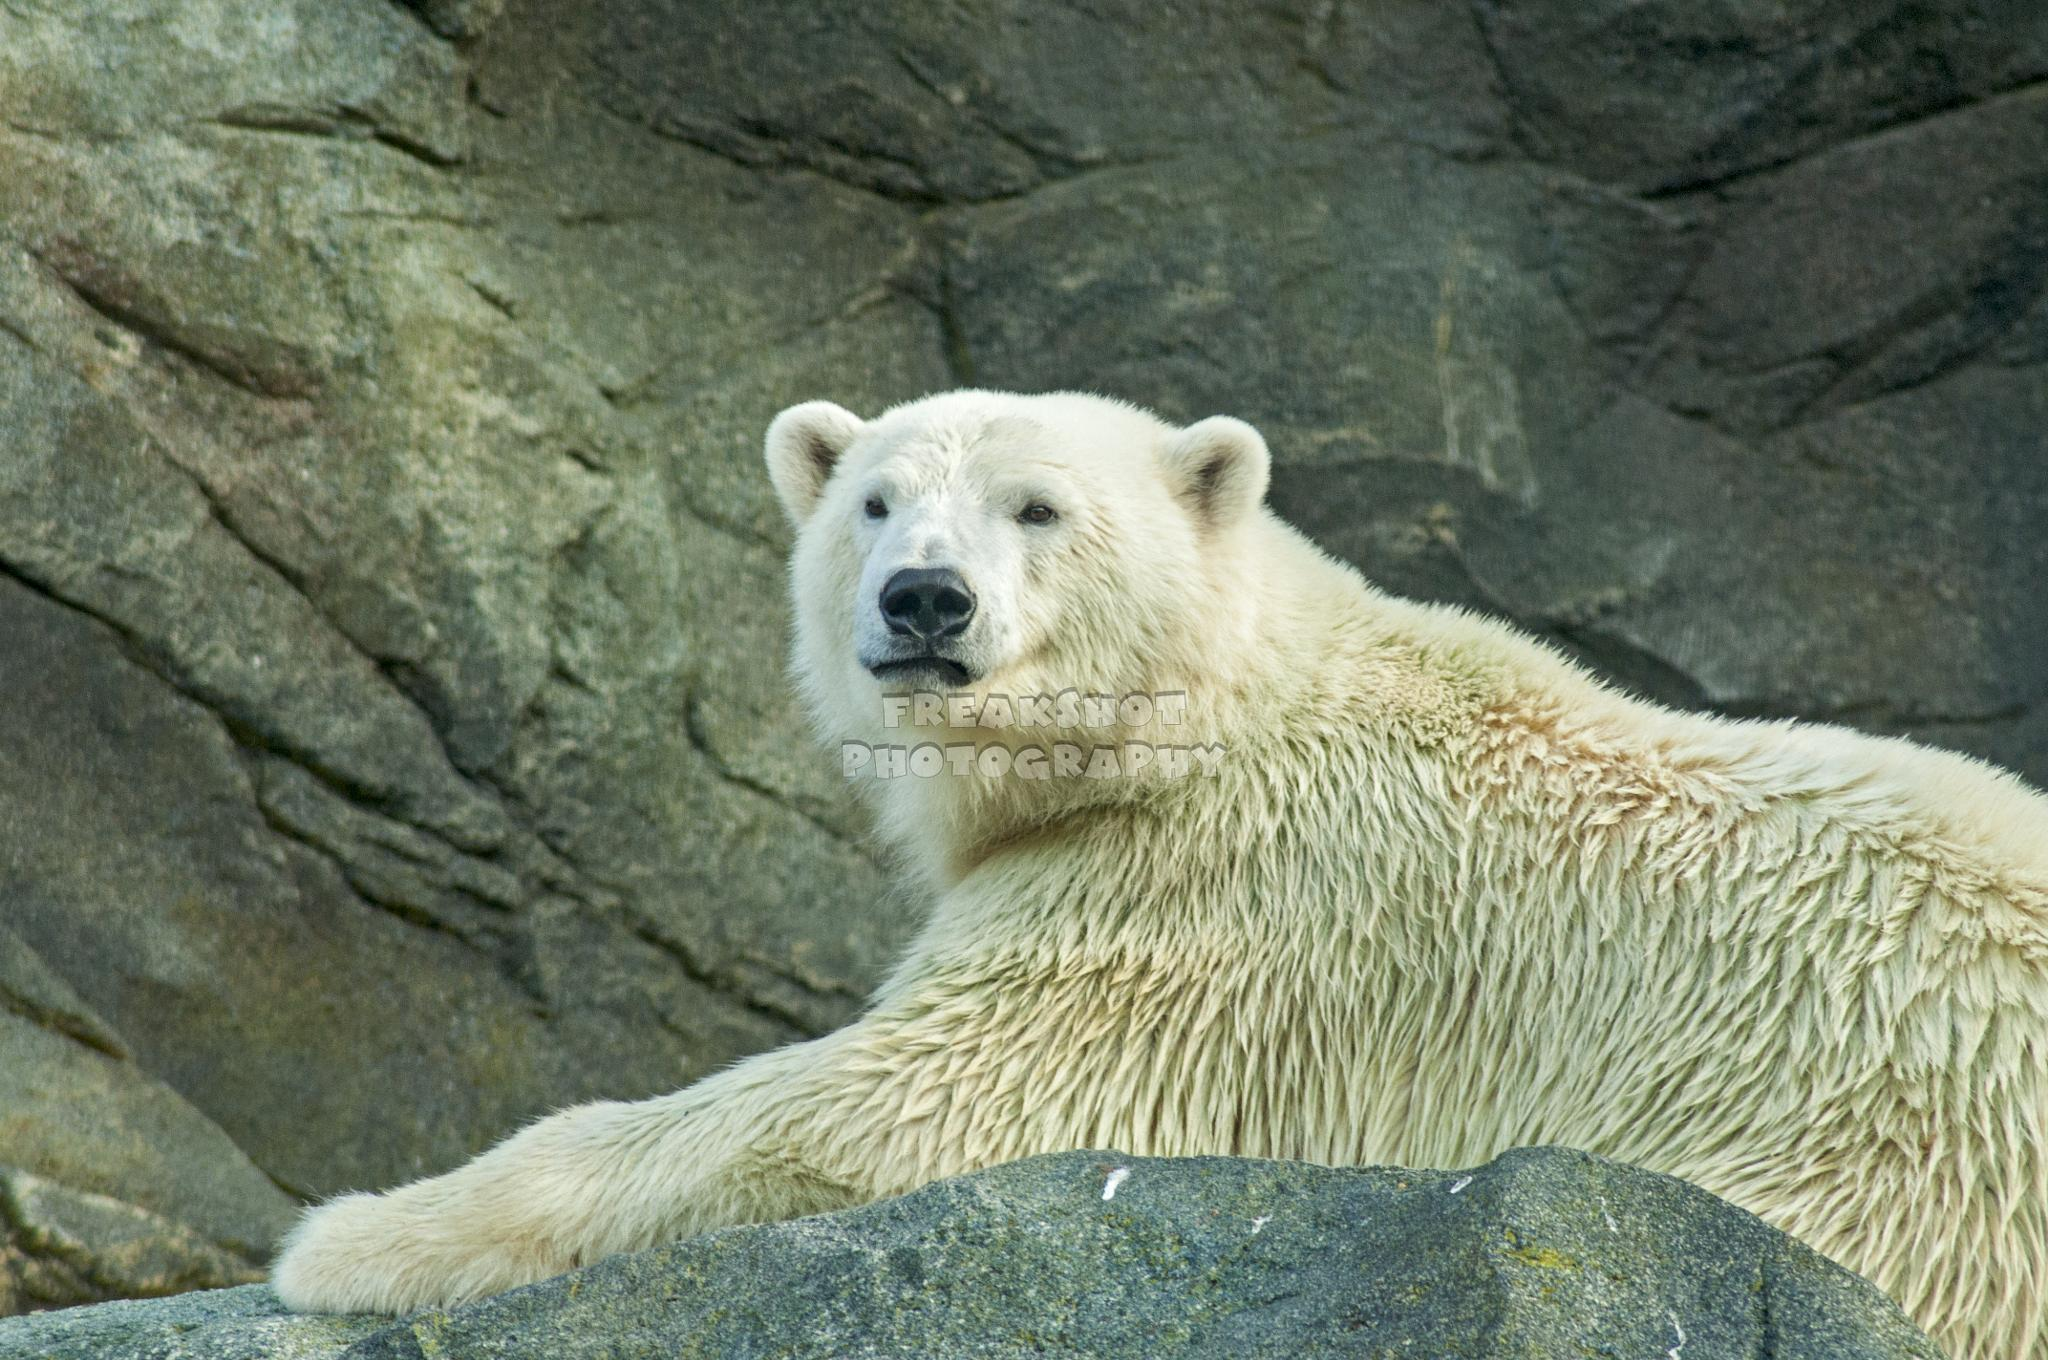 Polar Bear by FreakshotPhotography